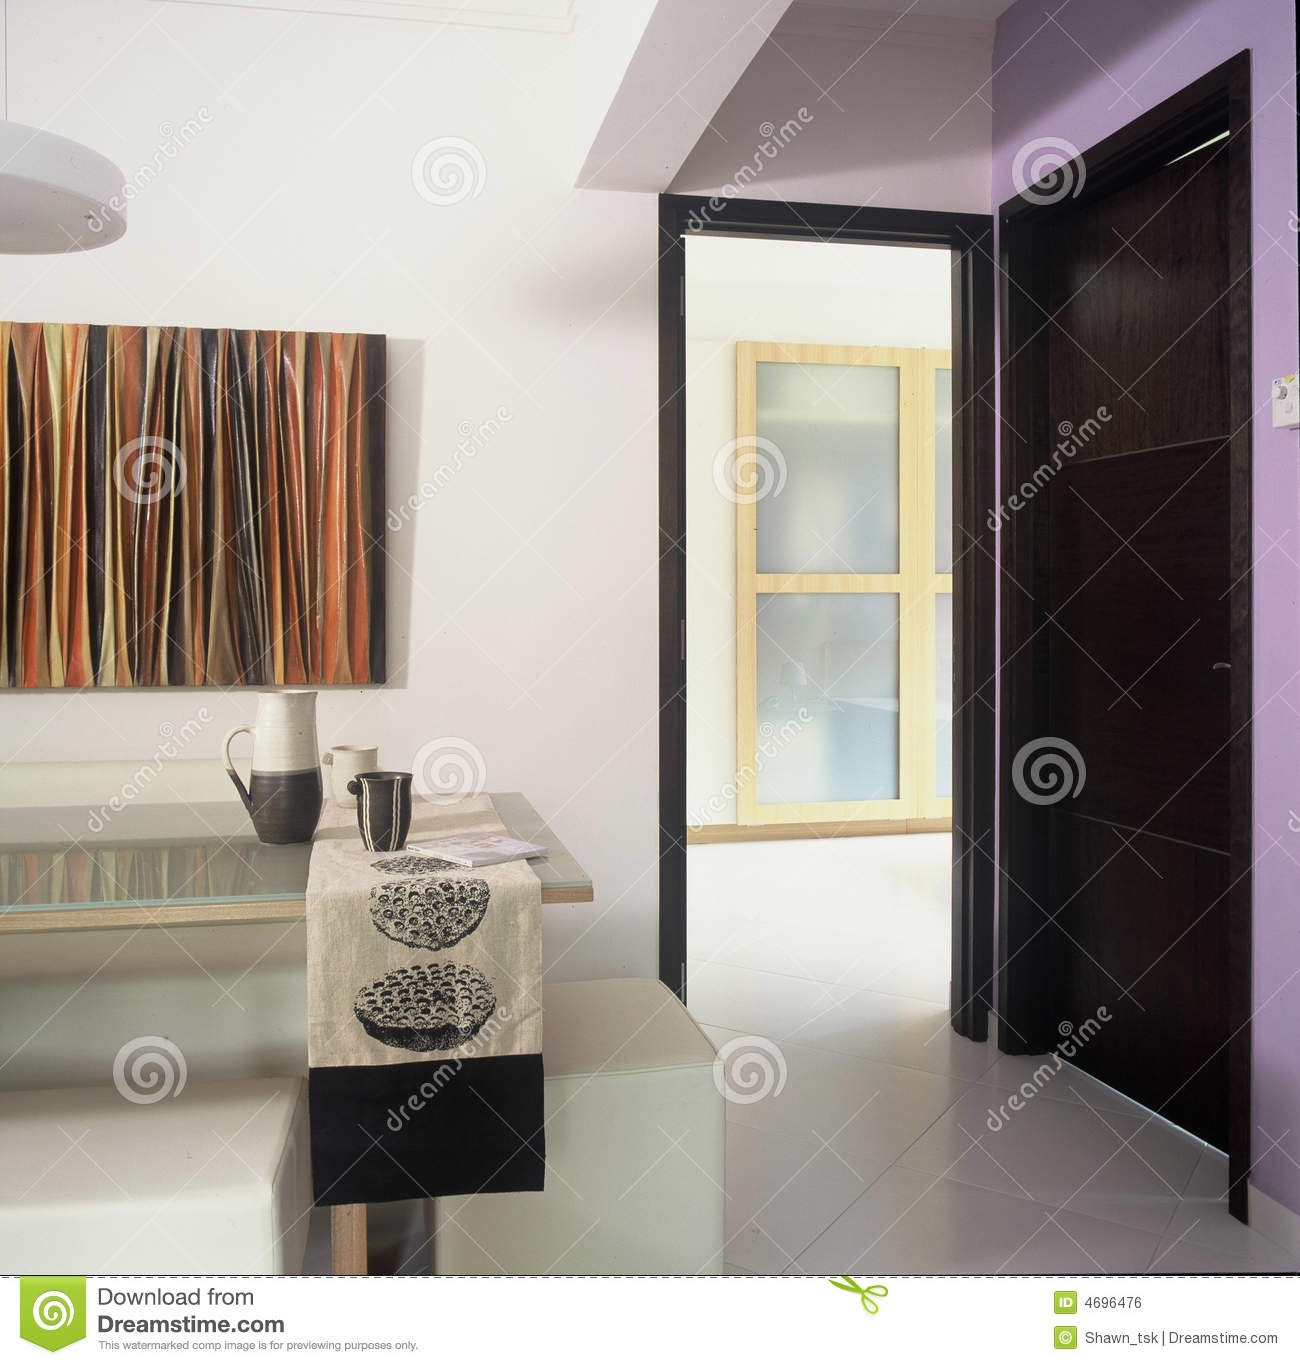 House entrance foyer royalty free stock image   image: 4696476